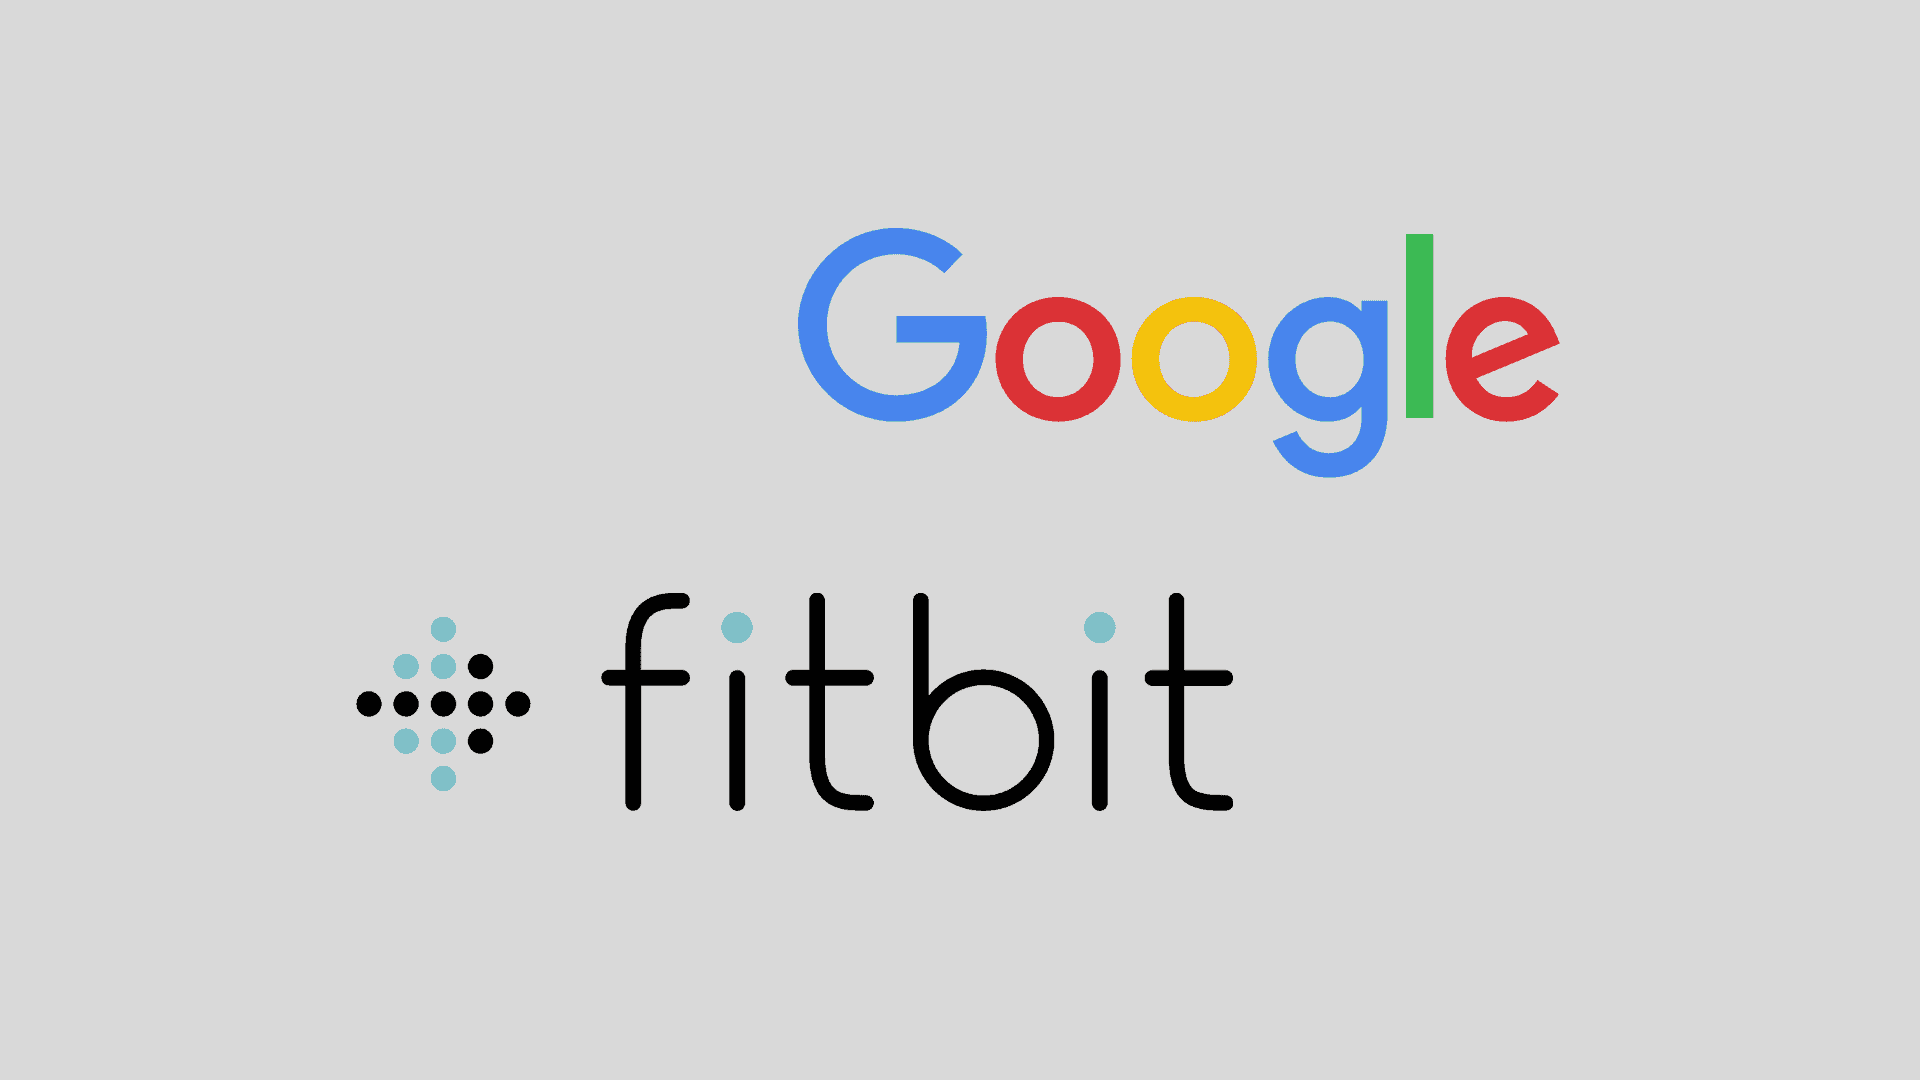 Fitbit overname Google